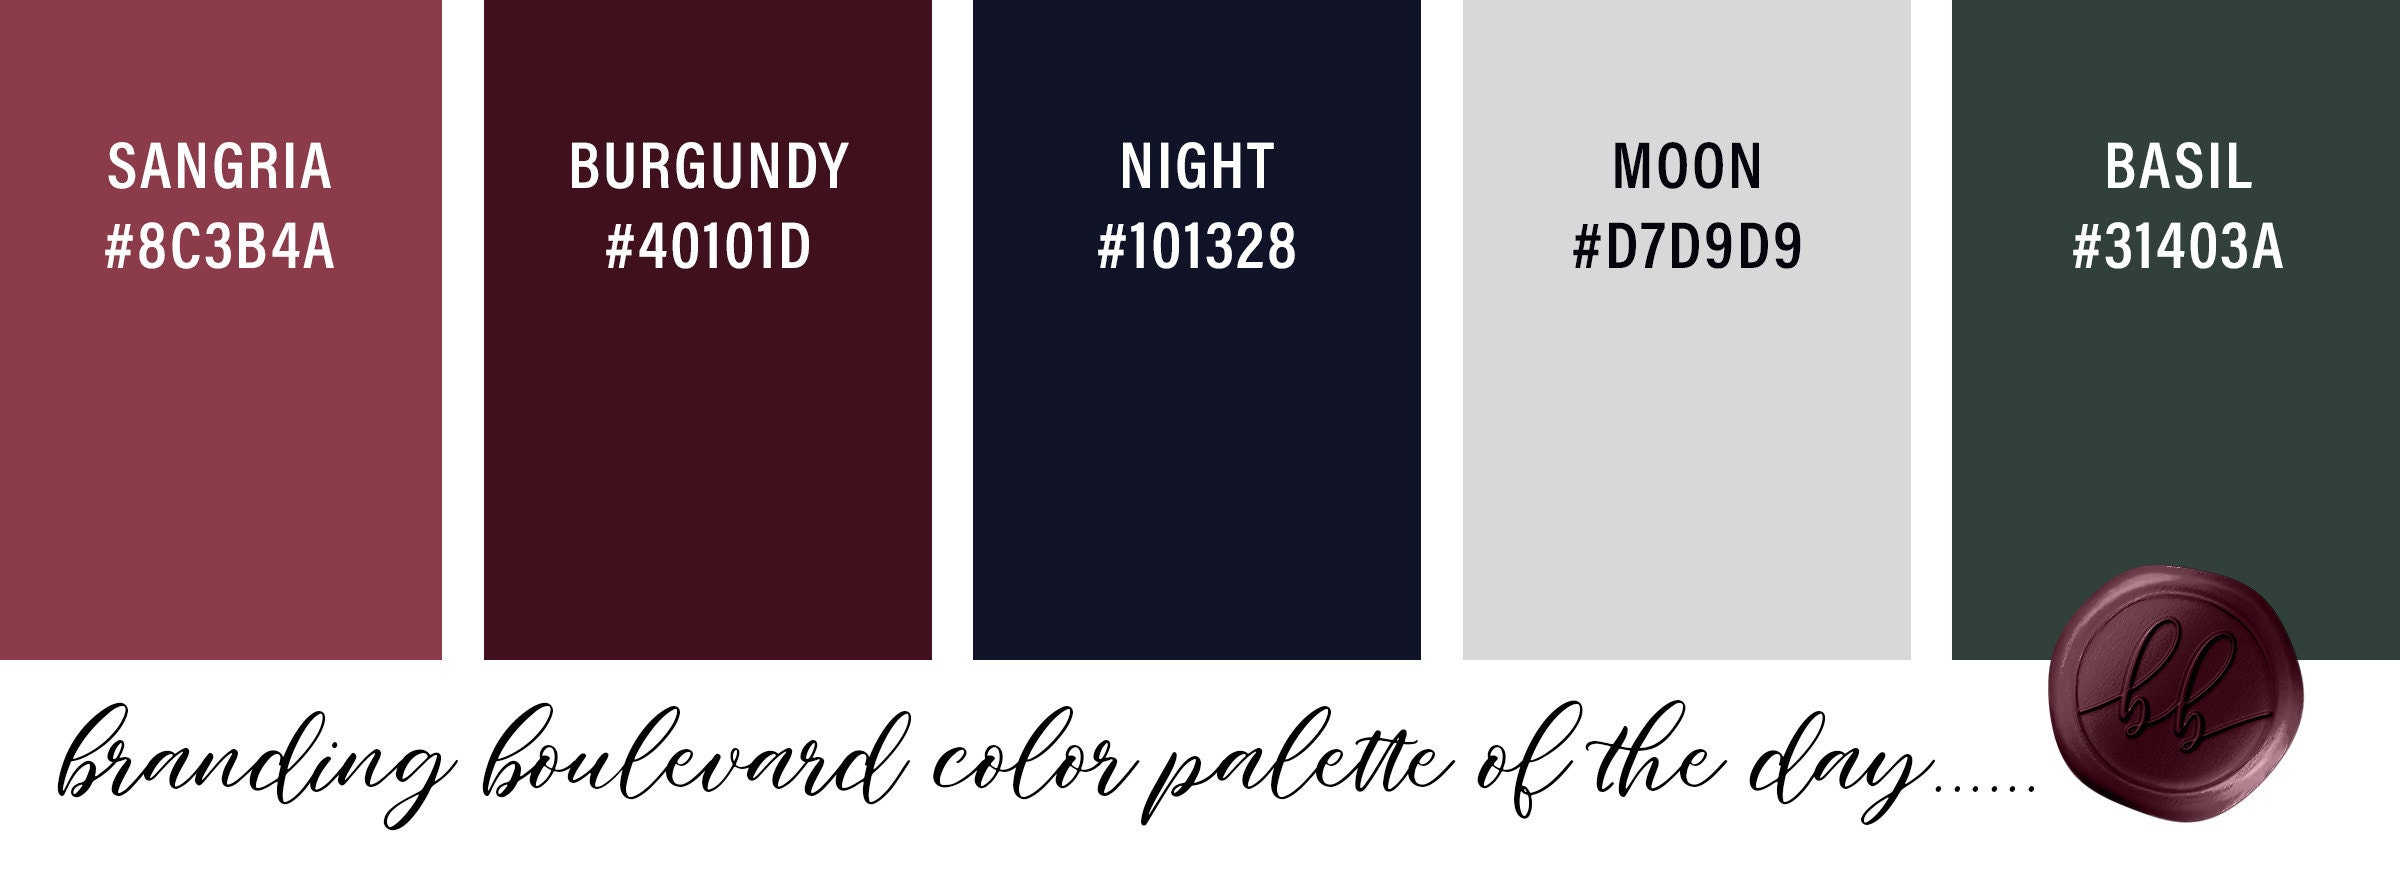 An Evening Cocktail Party Inspired Color Palette - Sangria Punch Red, Burgundy Wine Red, Night Navy Blue, Moon Silver gray, and Basil Green